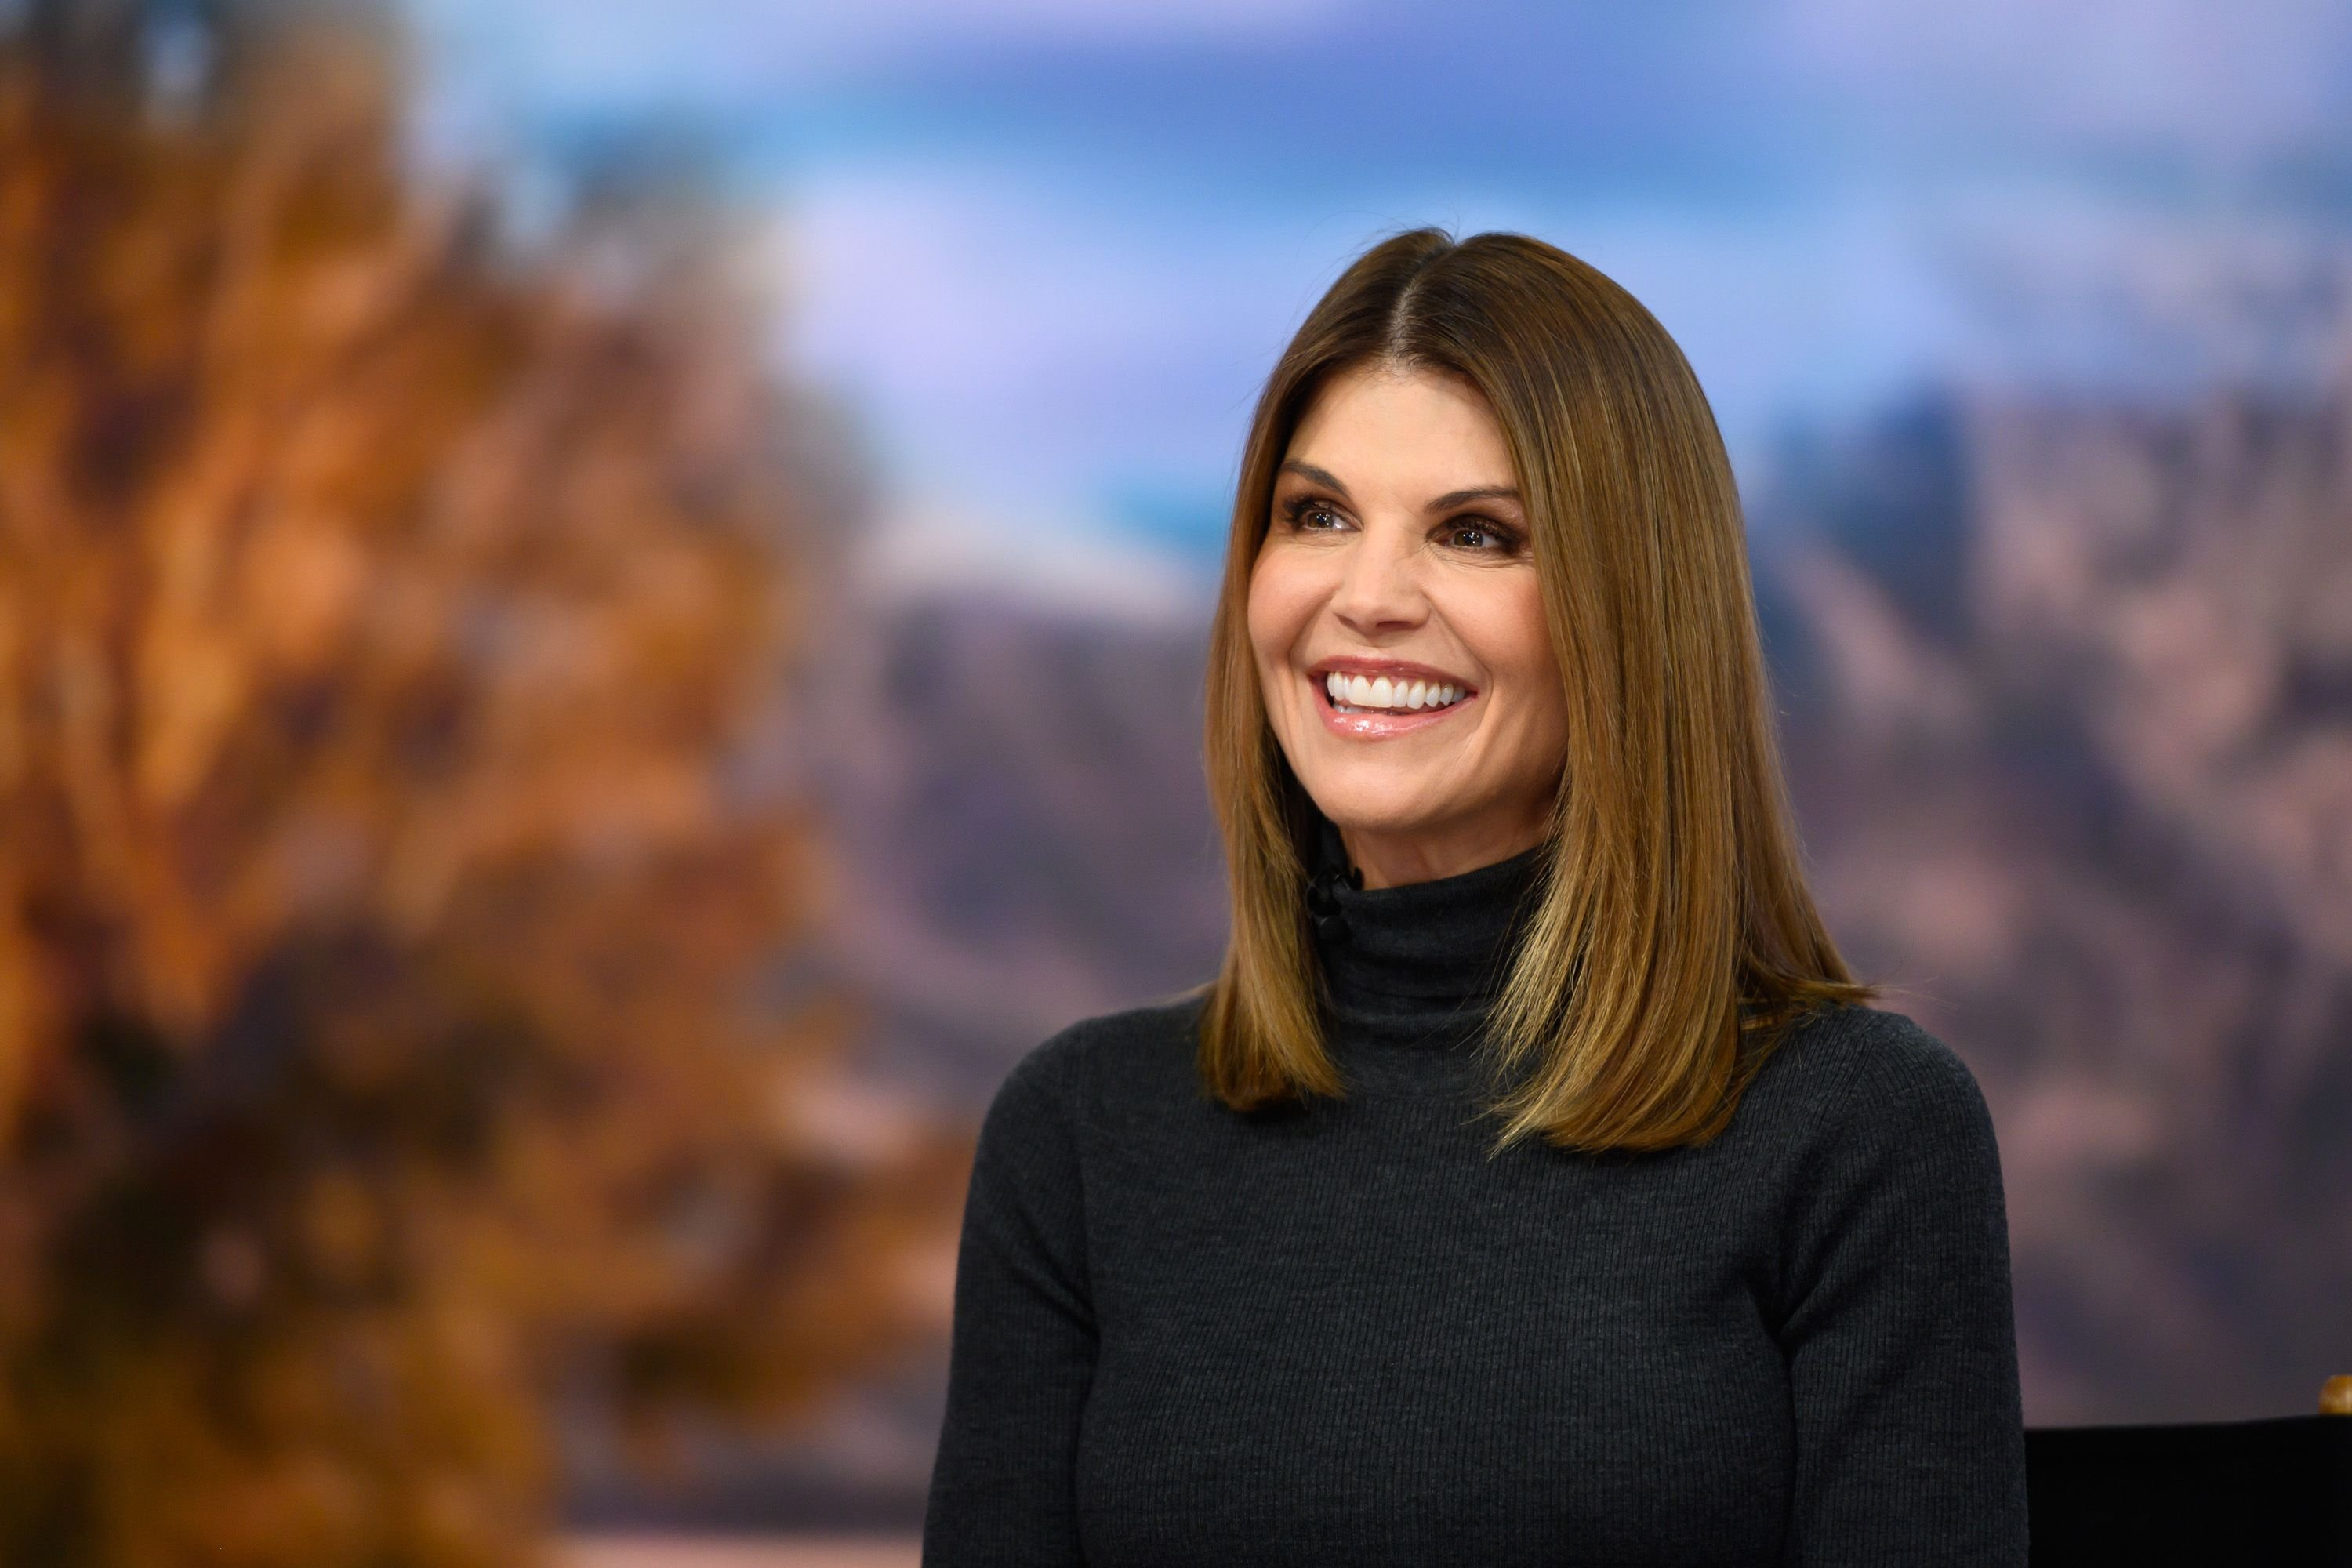 Lori Loughlin at Today - Season 68 on Thursday, February 14, 2019 | Photo: Getty Images